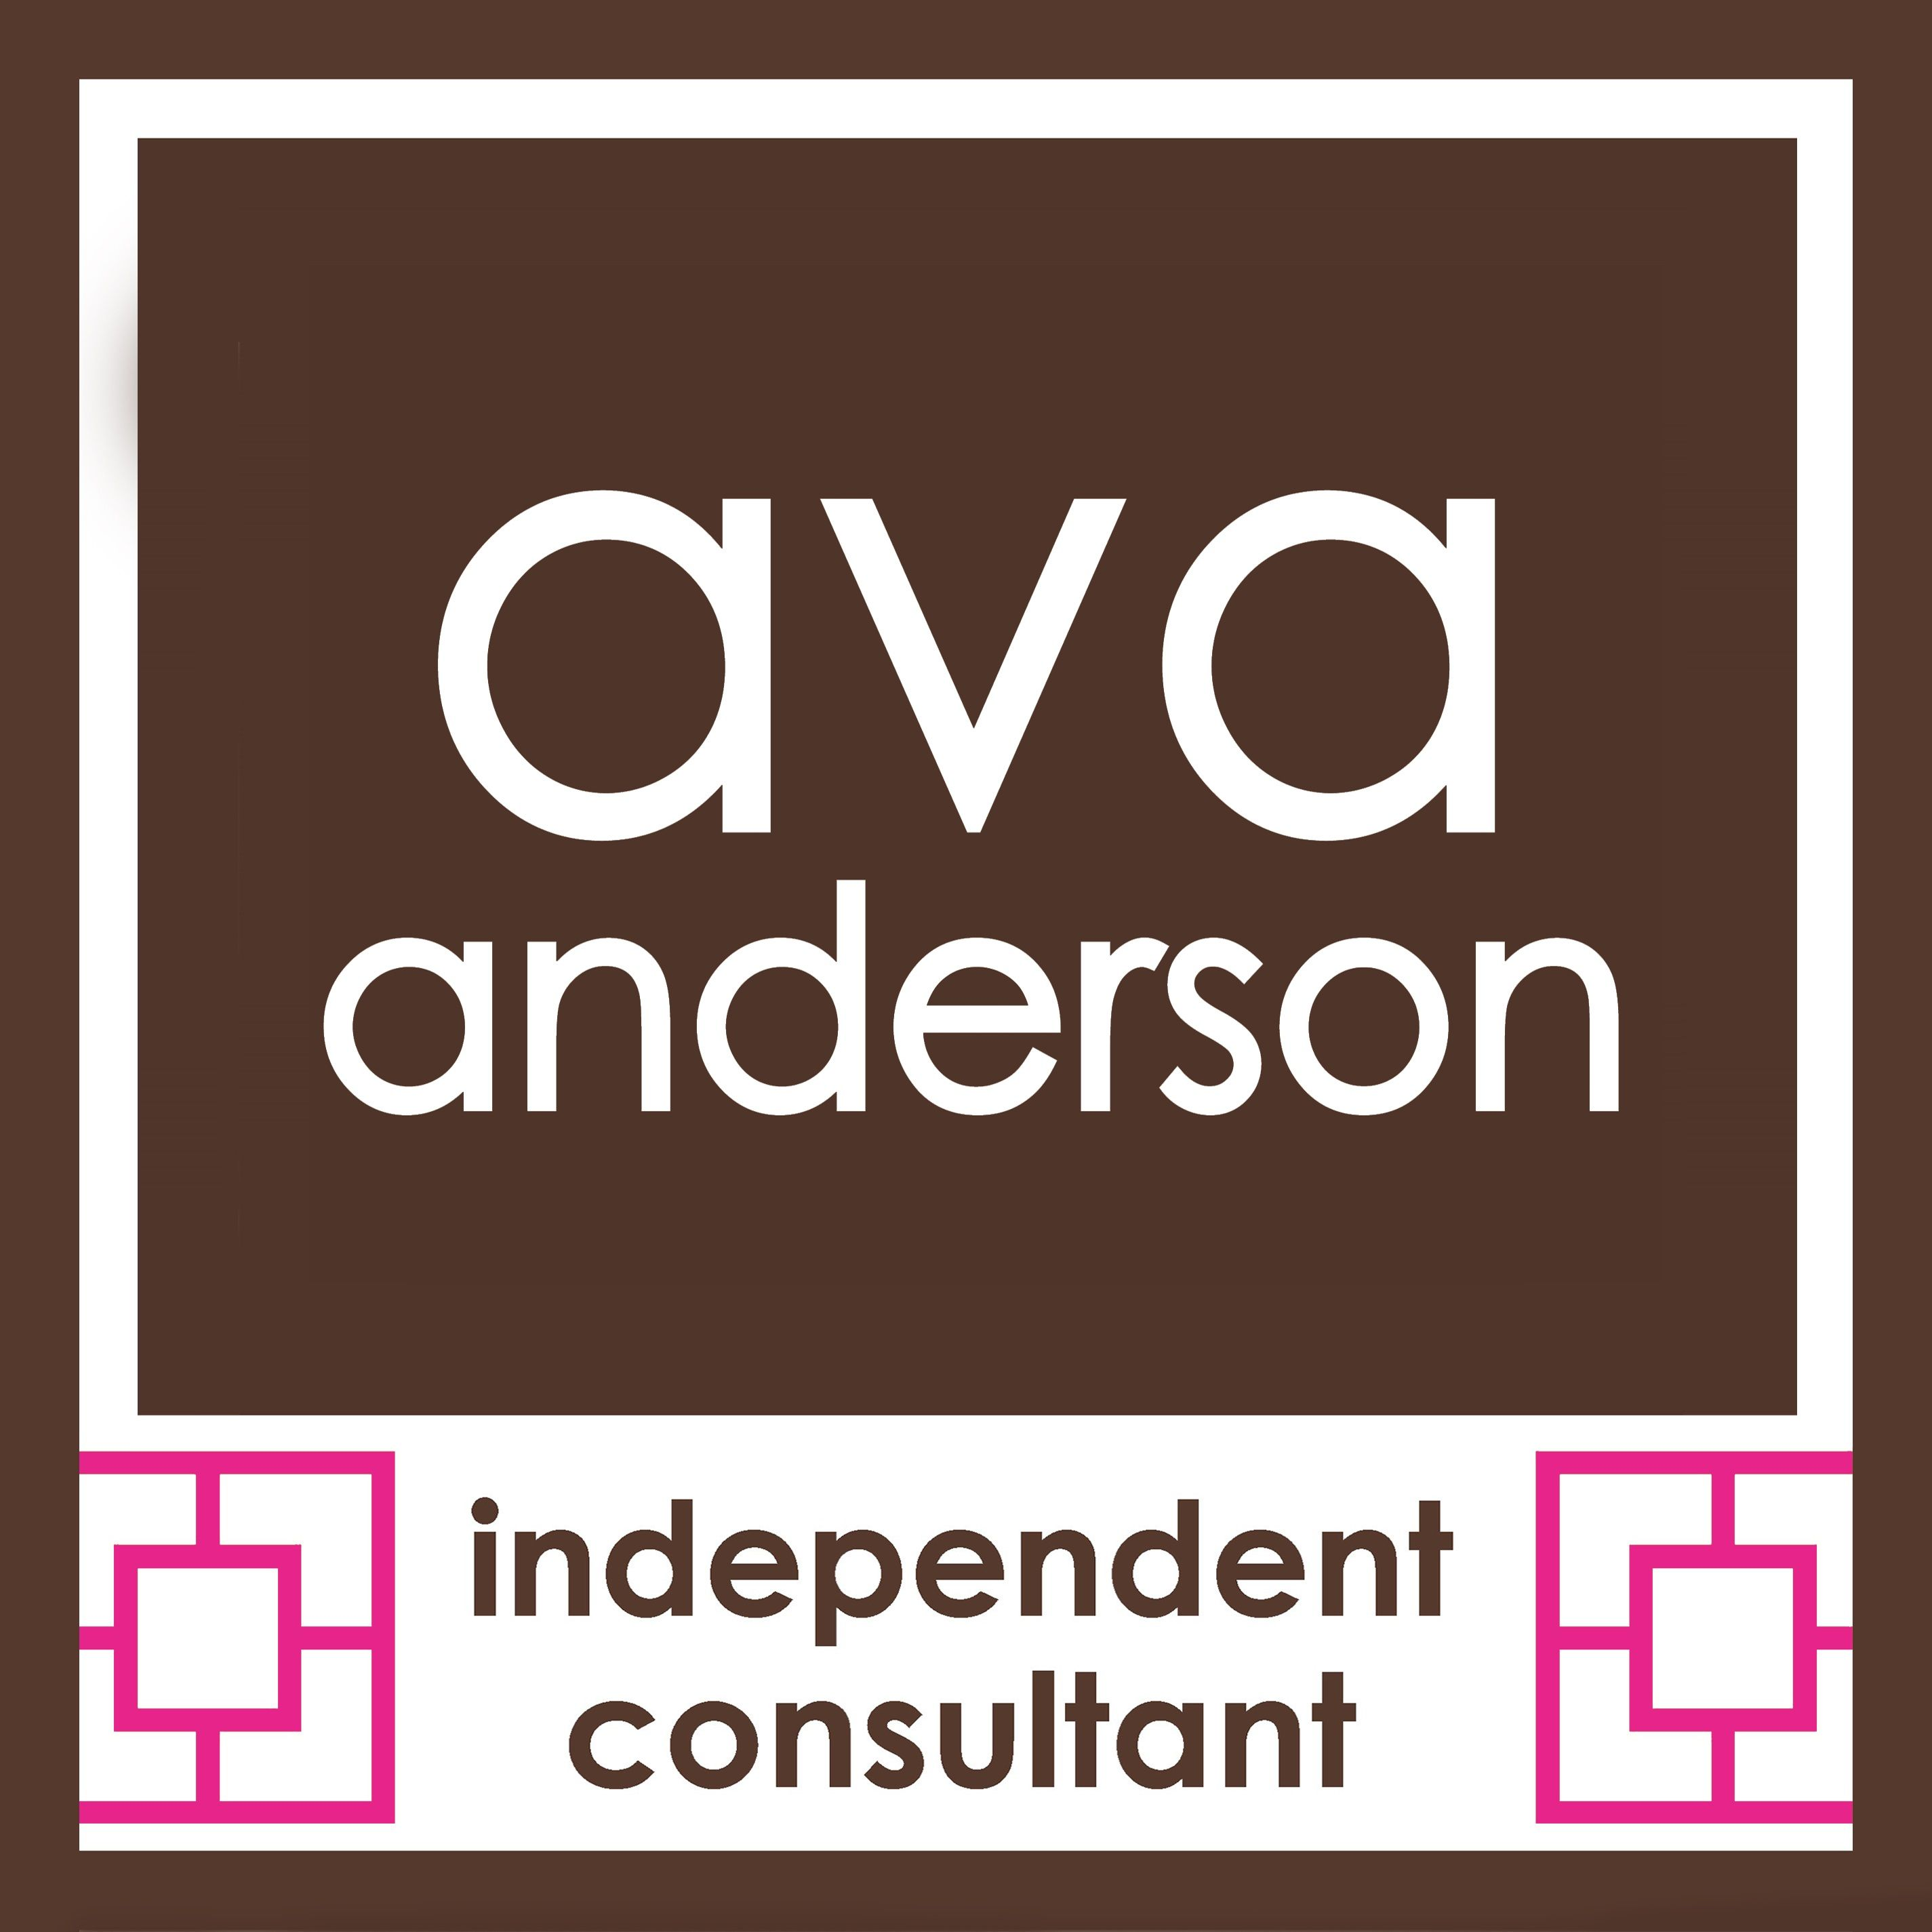 Ava Anderson Non Toxic Independent Consultant https//www